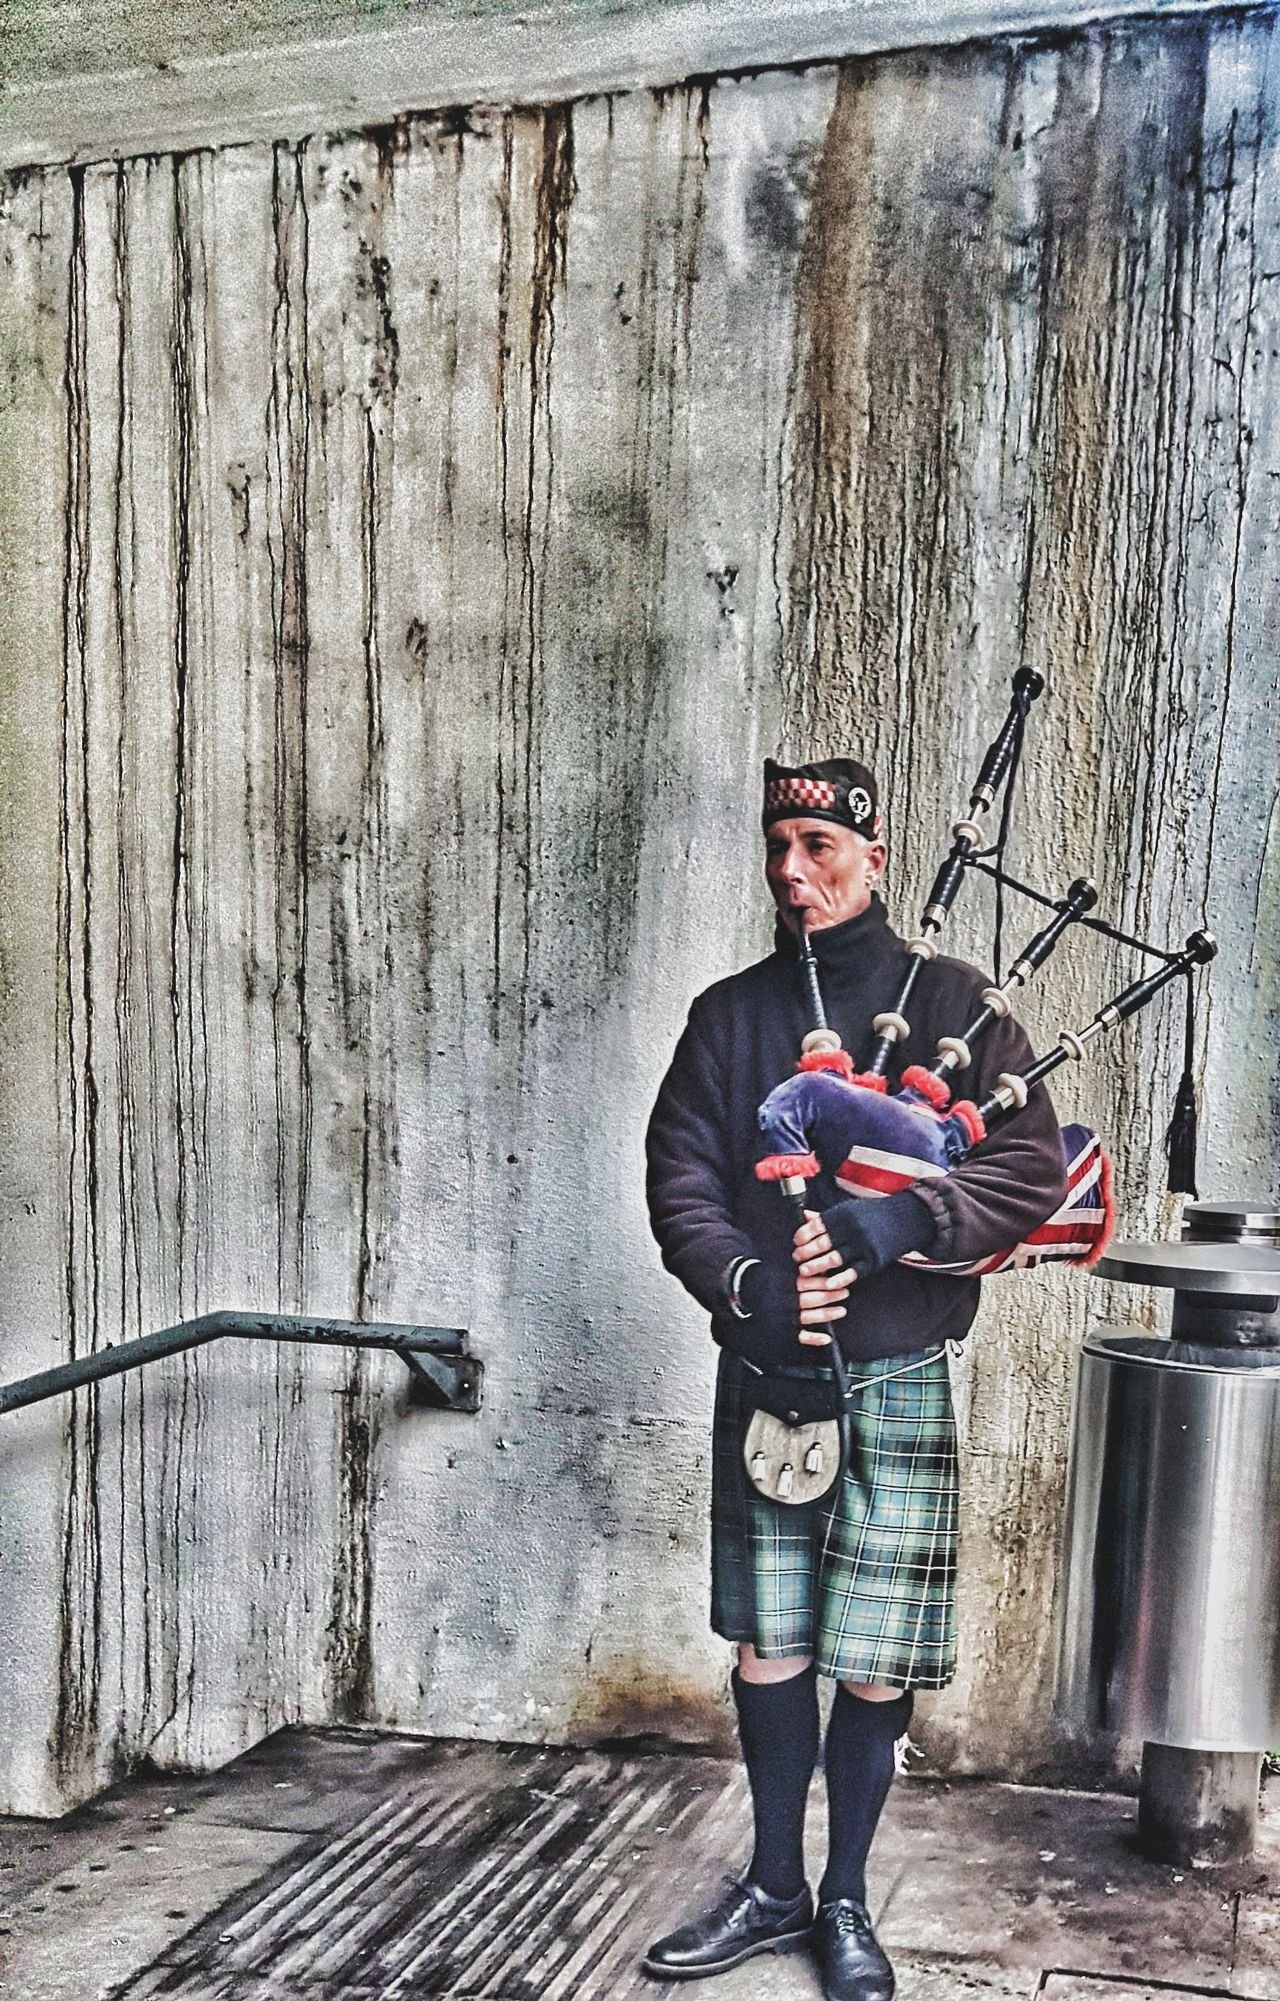 Pipes of peace. One Person Music Outdoors One Man Only Standing Men Musical Instrument Bagpiper Bagpipes Veteran Underpass Emotions Captured